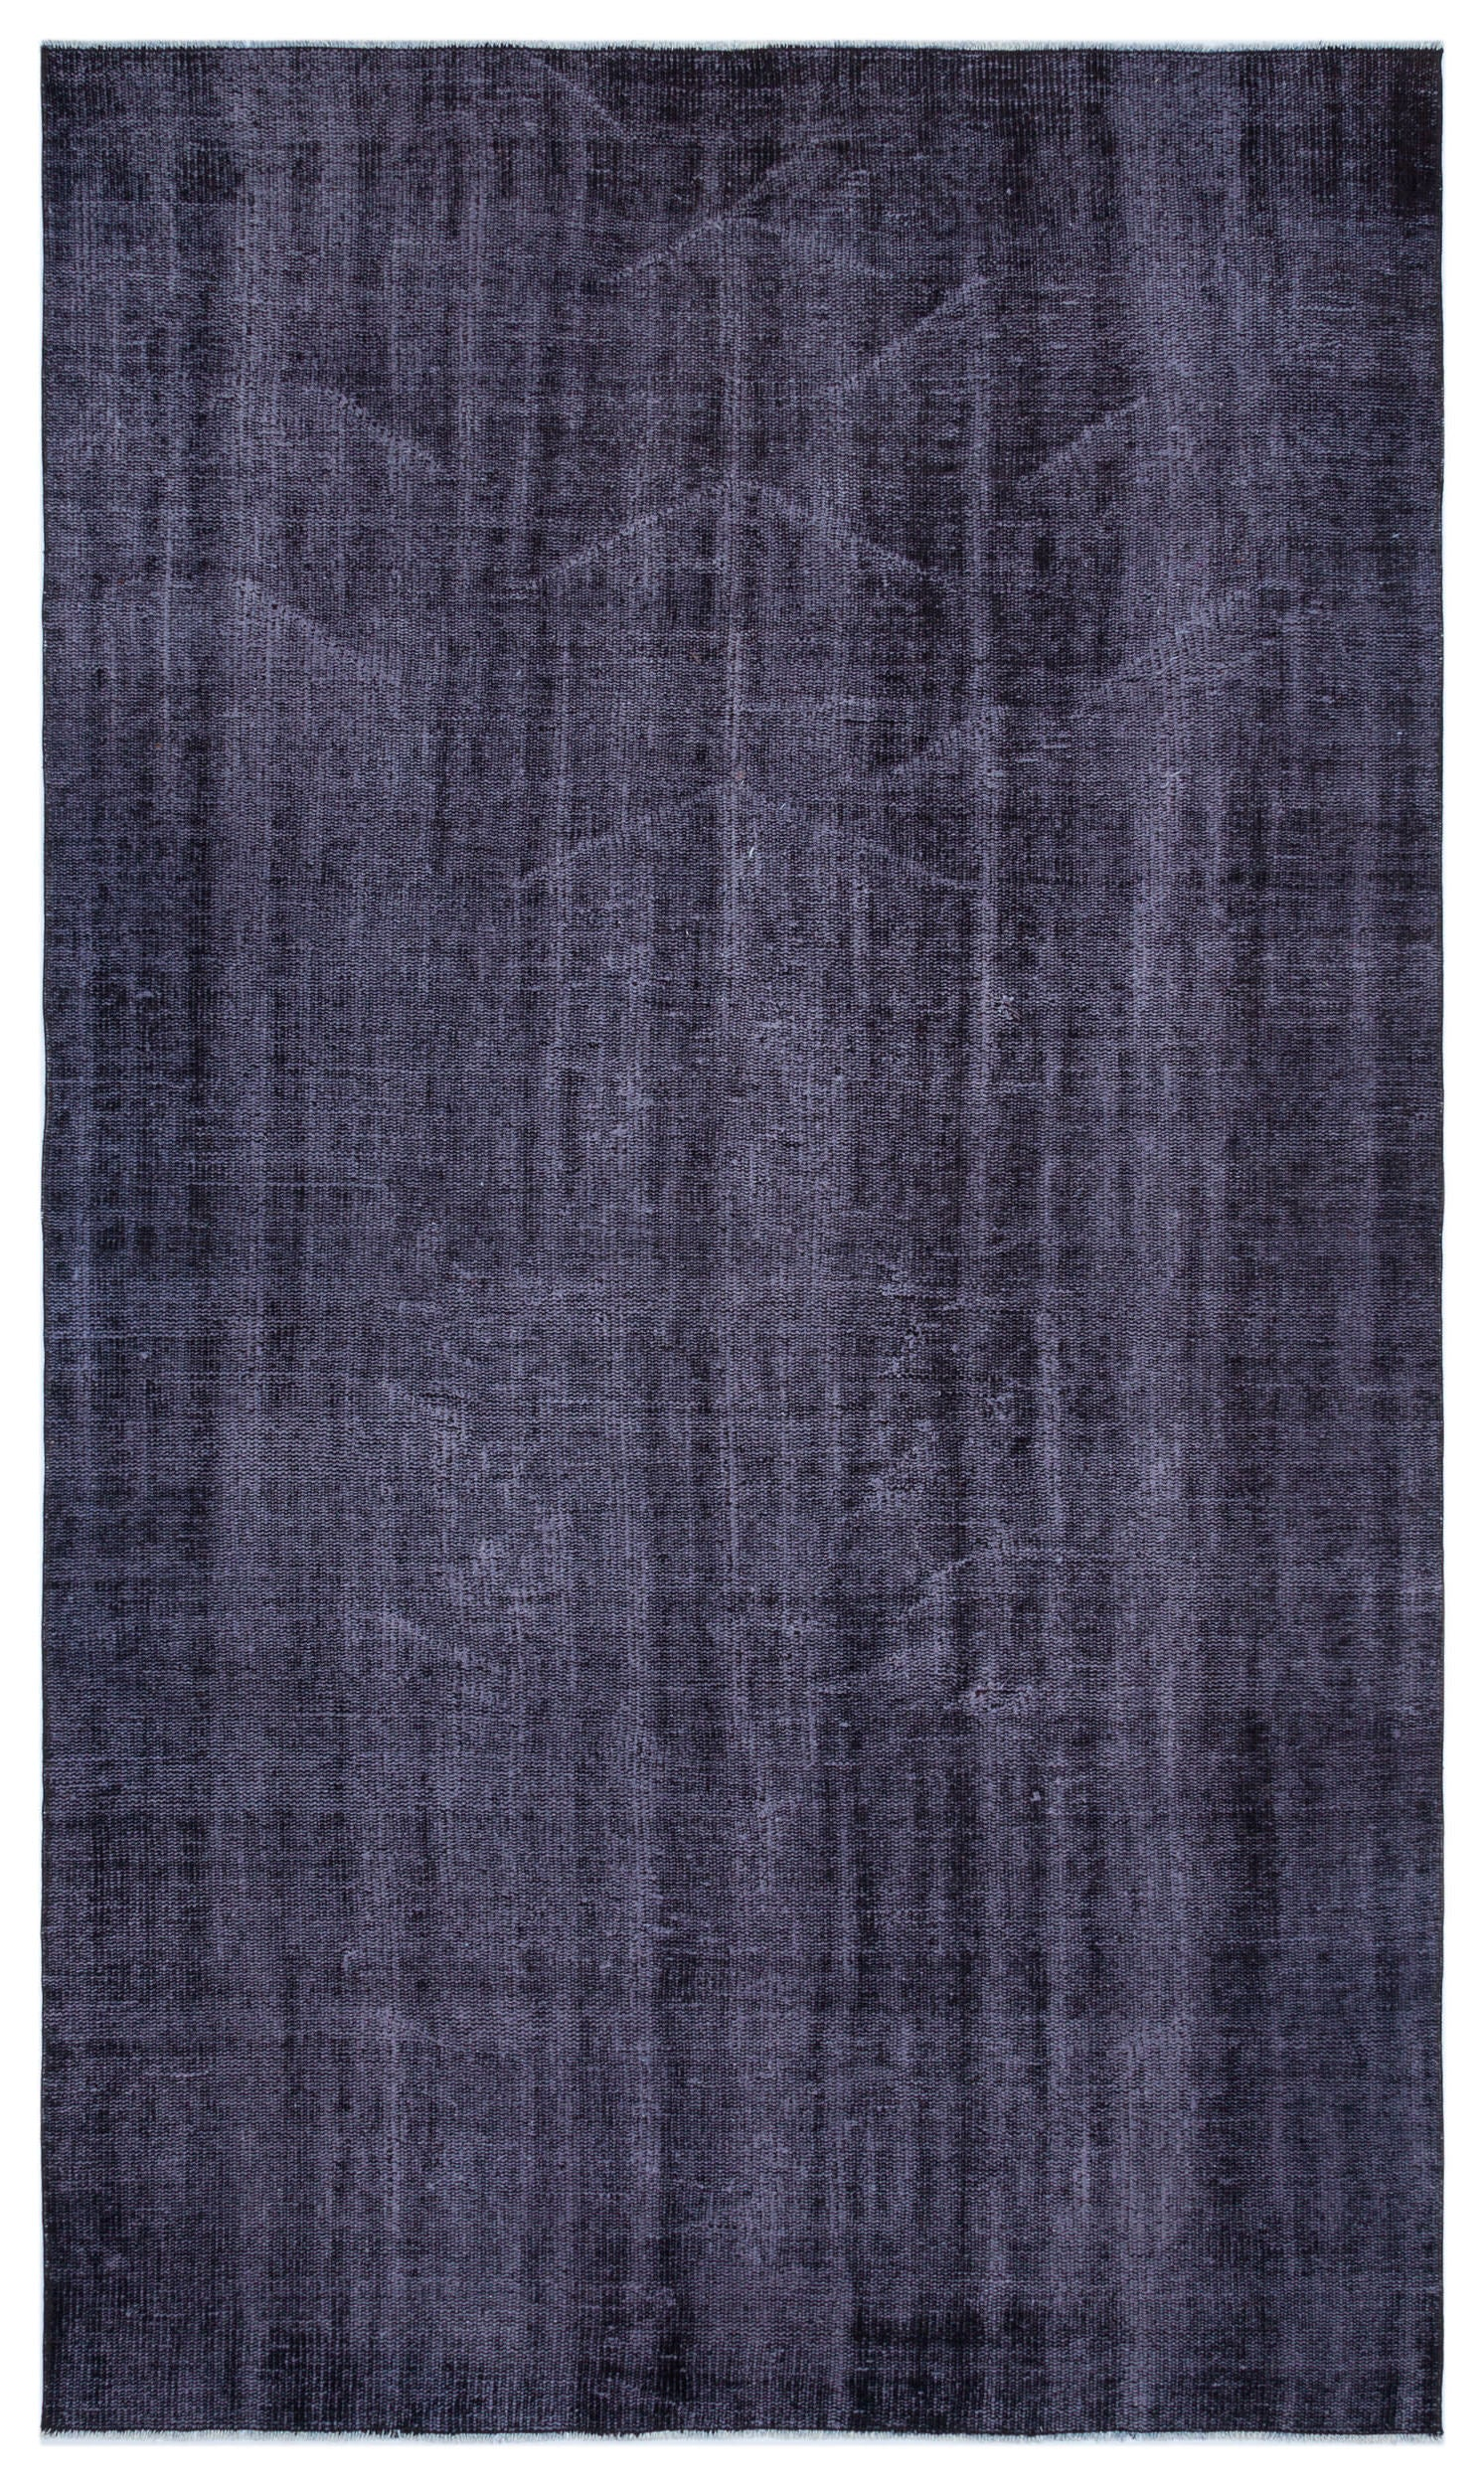 Purple Over Dyed Vintage Rug 4'11'' x 8'8'' ft 150 x 265 cm